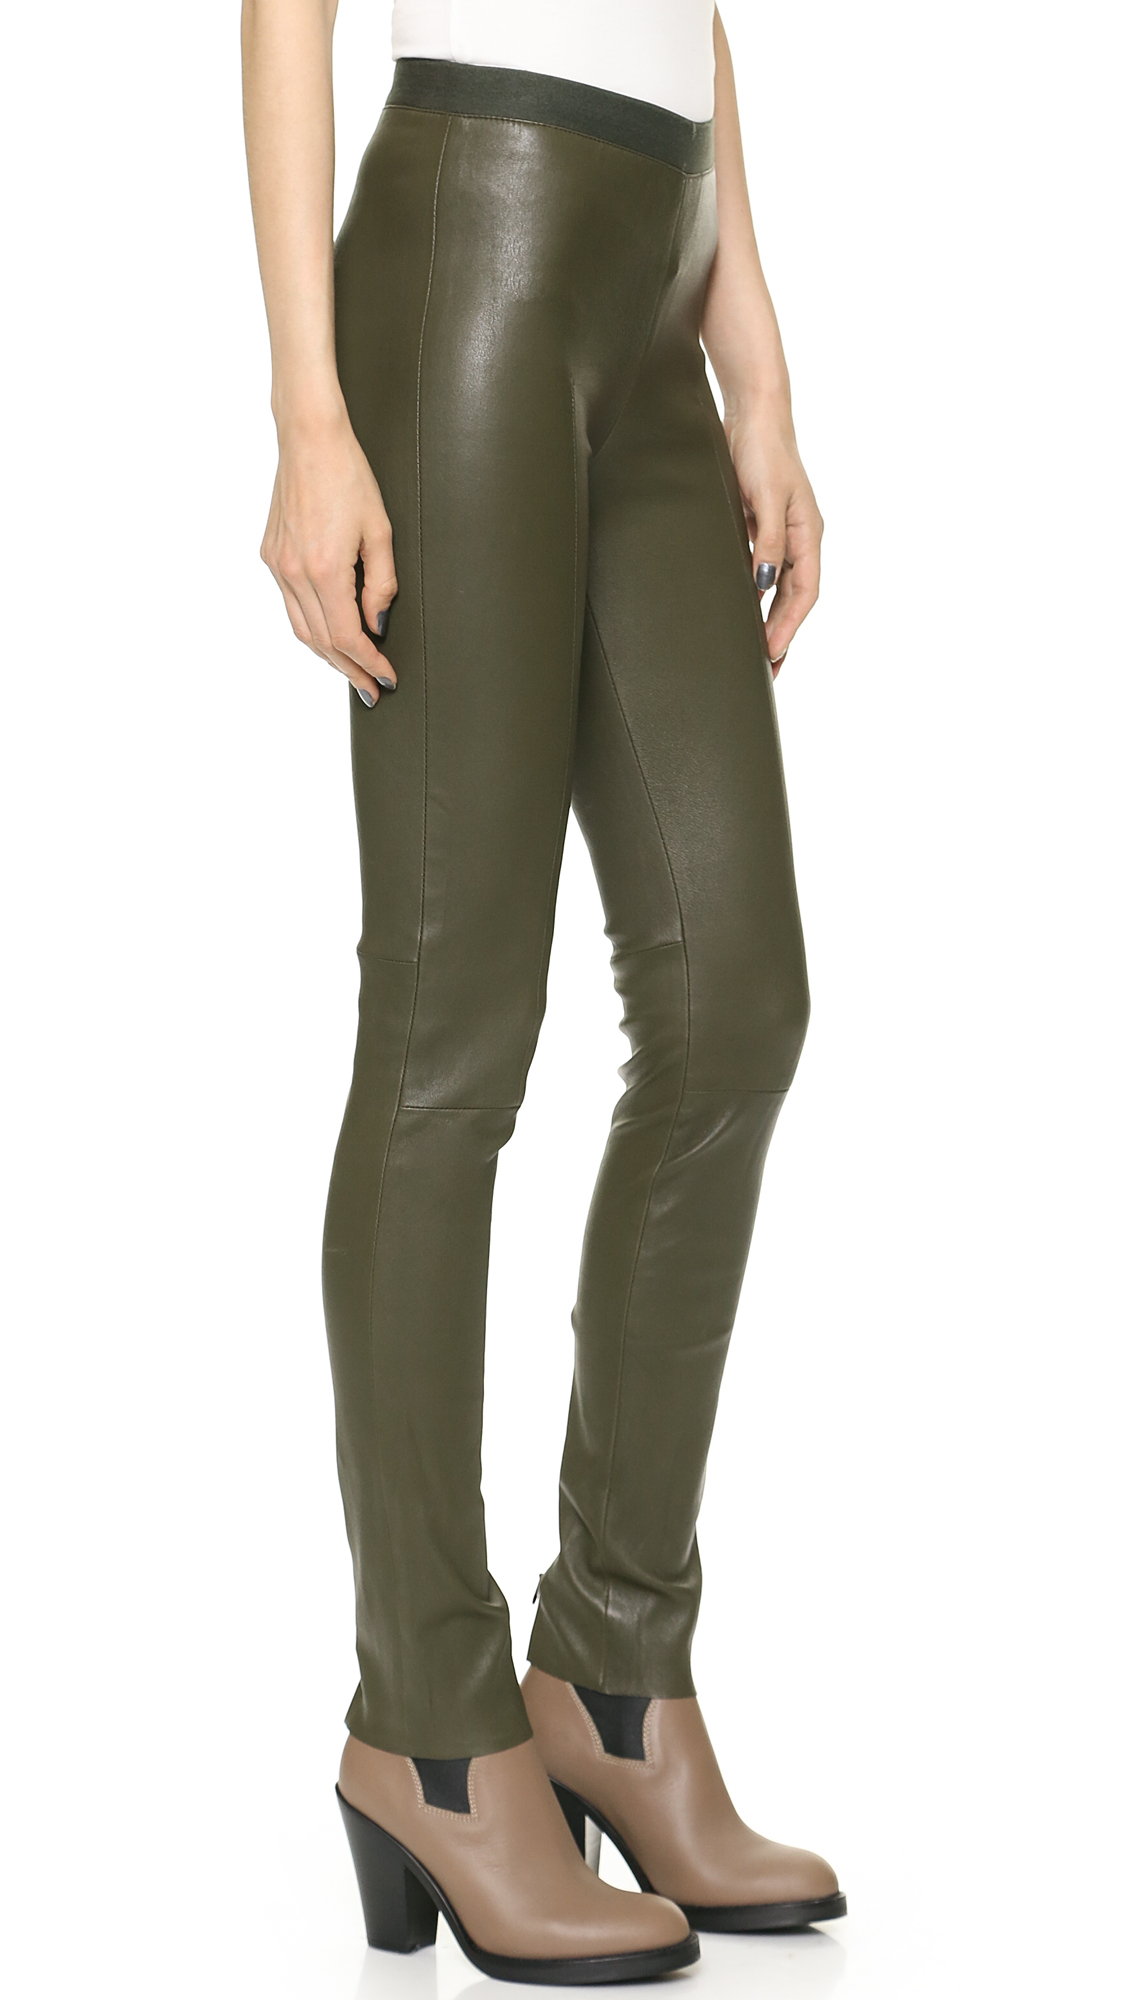 Acne Clean Leather Pants - Moss Green in Green | Lyst